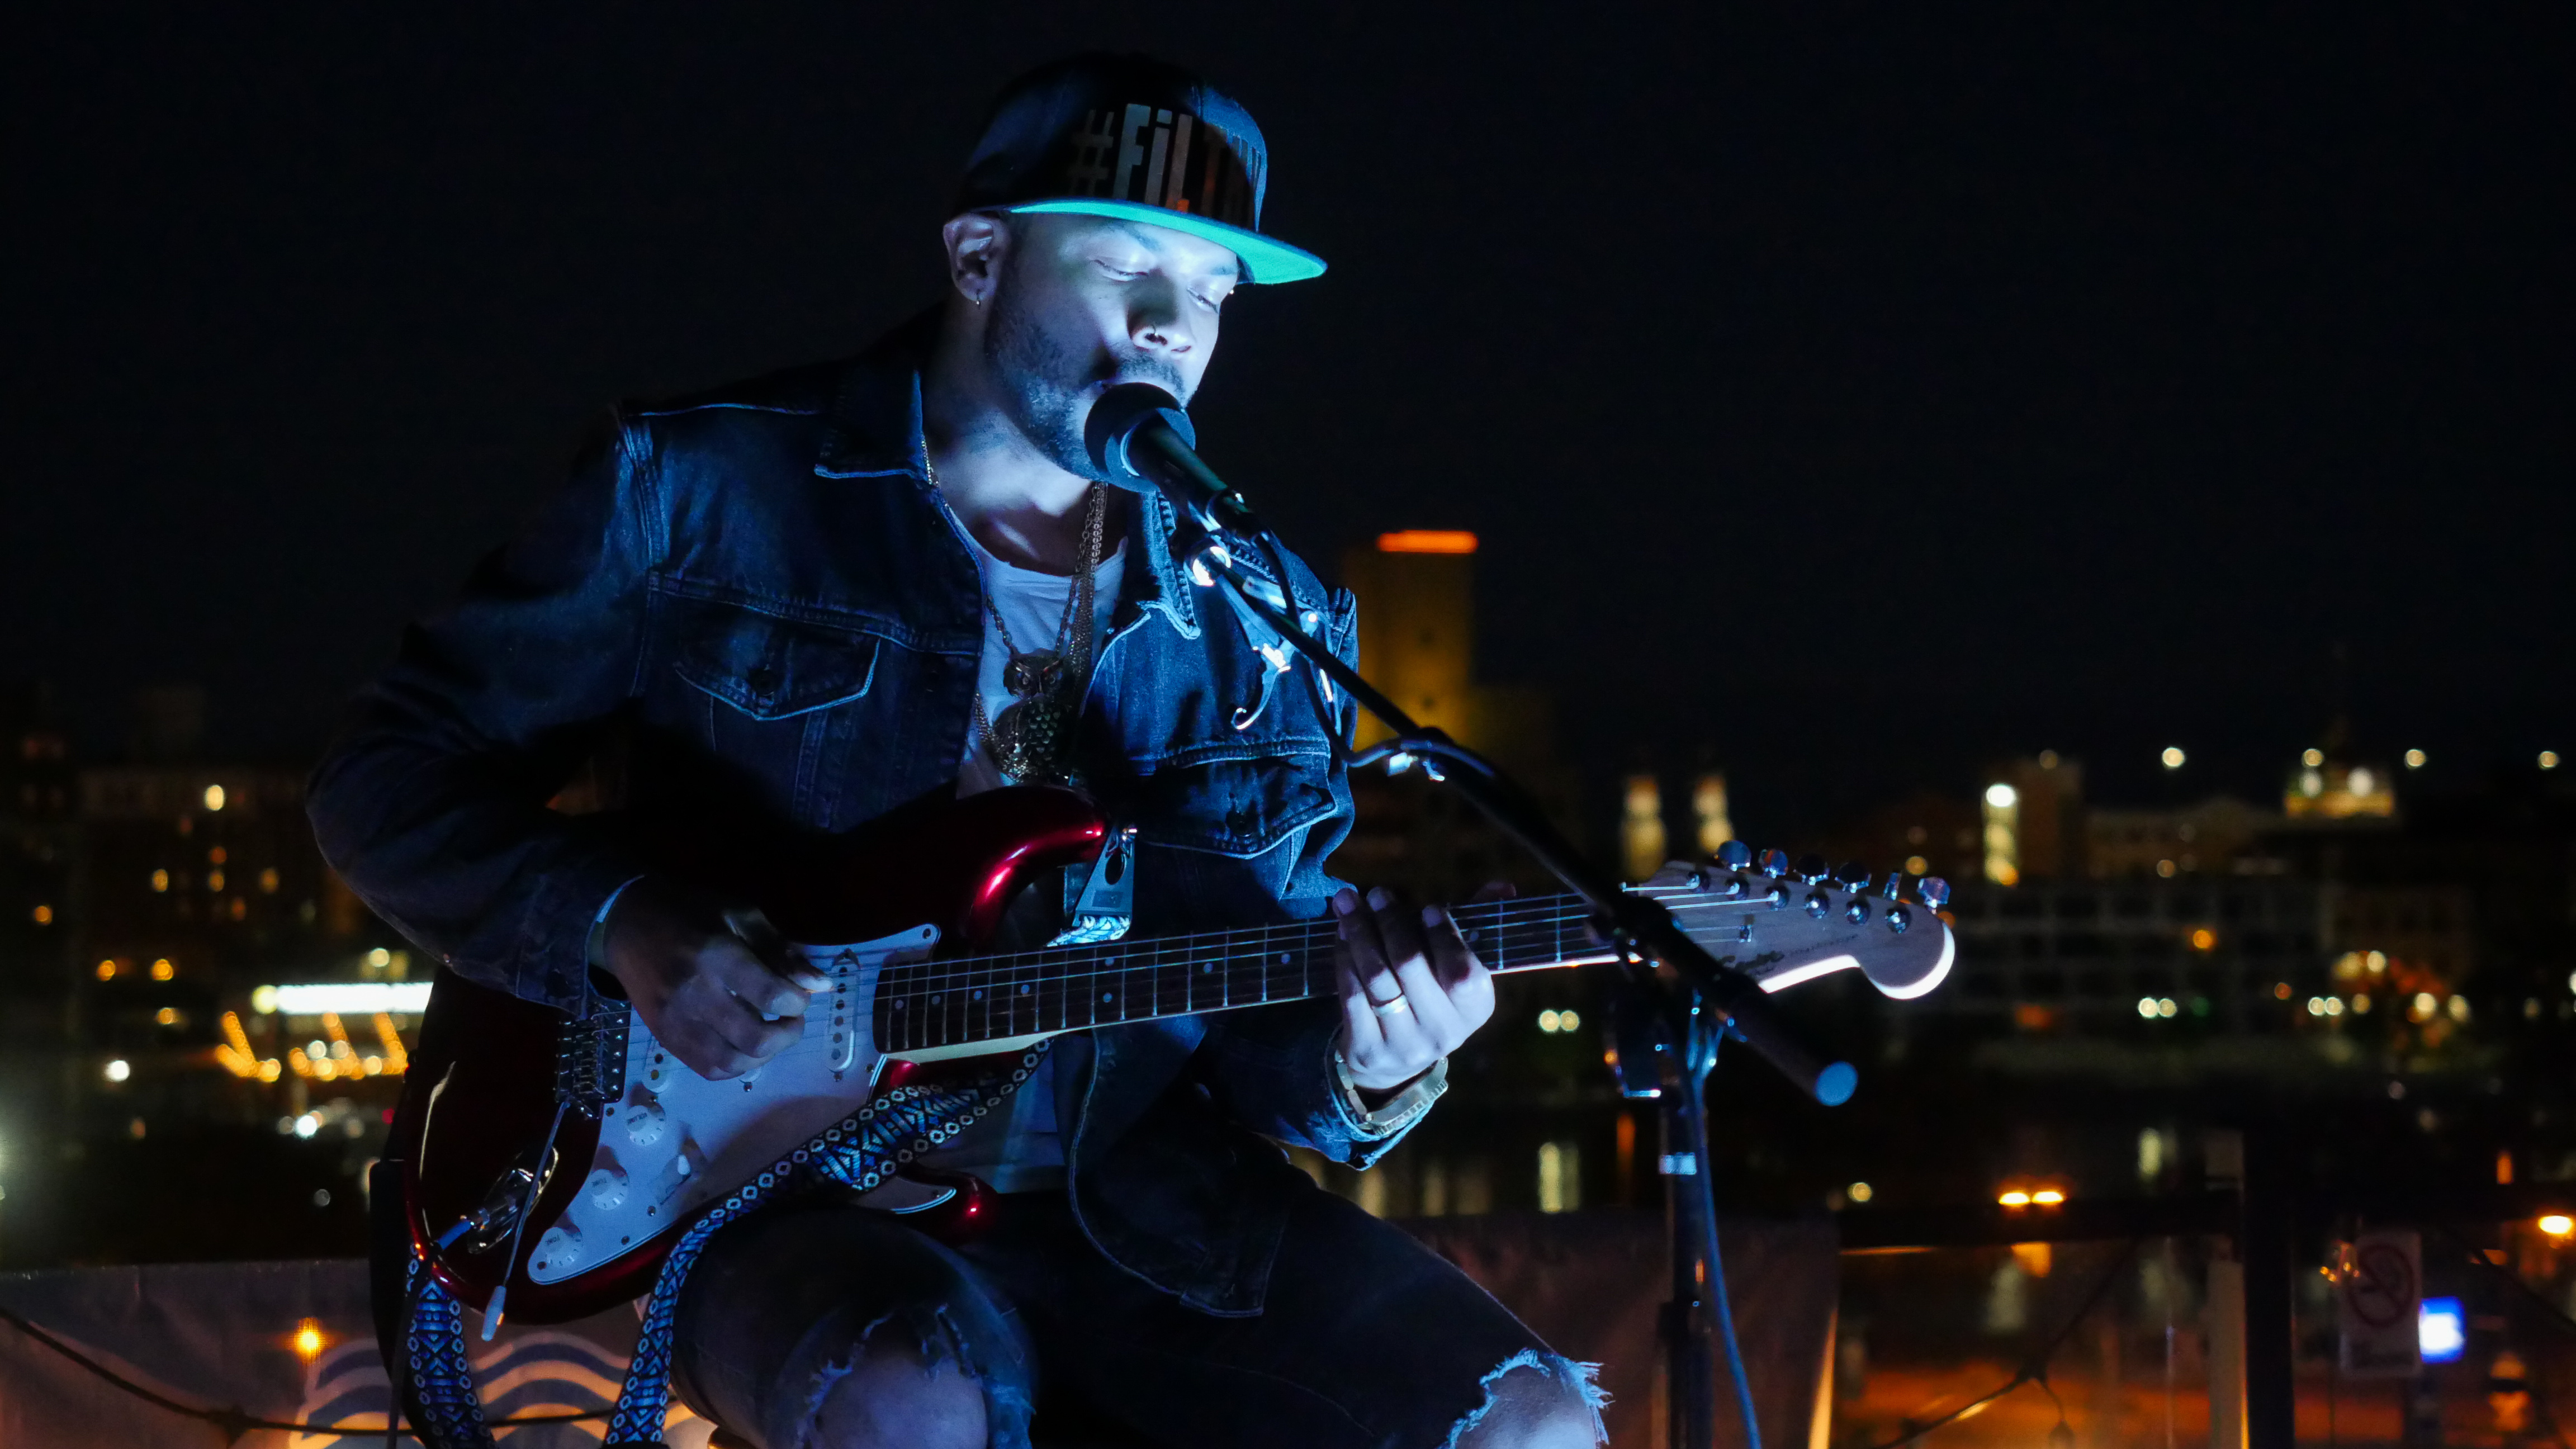 Seattle's Ayron Jones performing Hopeland Festival 2019 at Titletown Brewing Co.'s Rooftap in the Railyard District of downtown Green Bay, Friday, September 6th, 2019 (WCWF/ Beni Petersen)